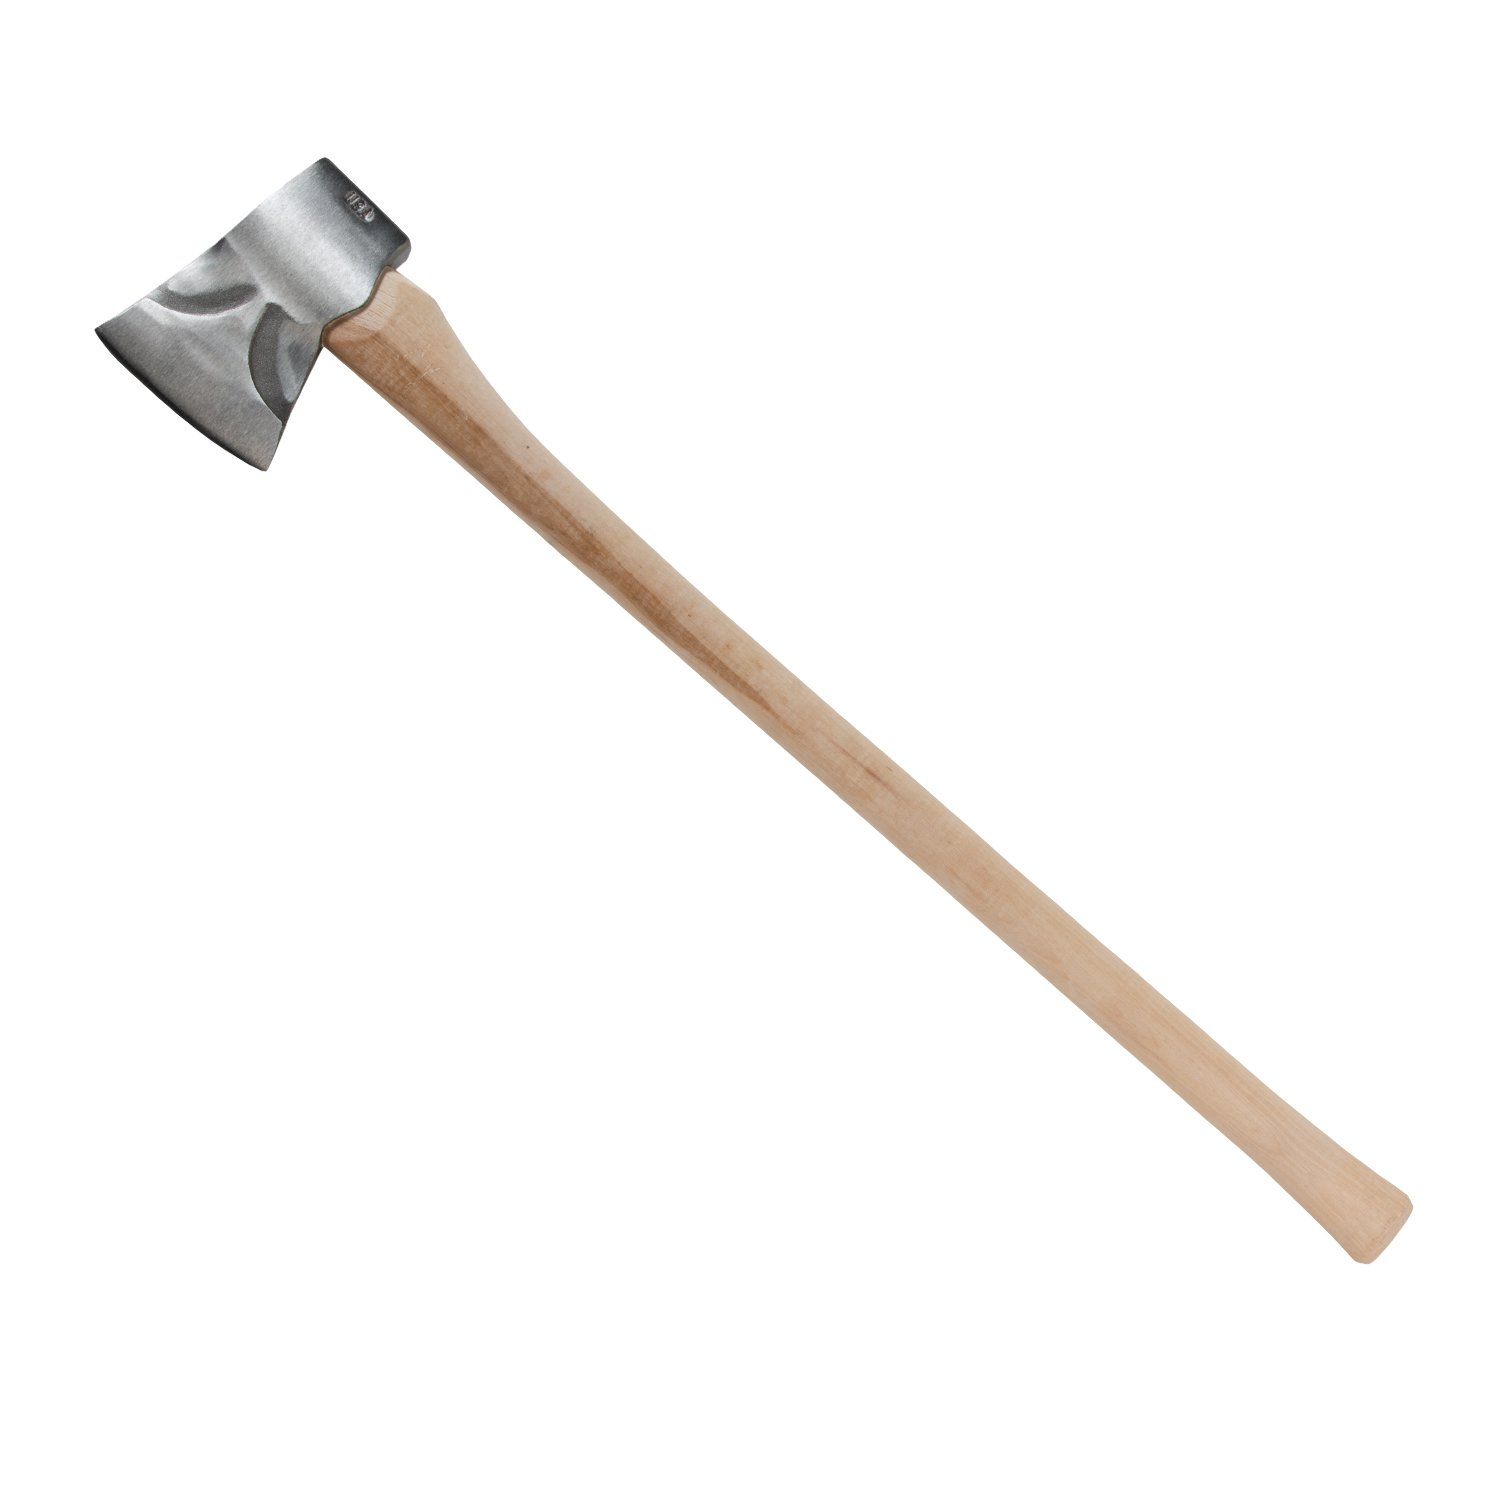 Council Tool 3.5 lb Classic Jersey Pattern SB Axe